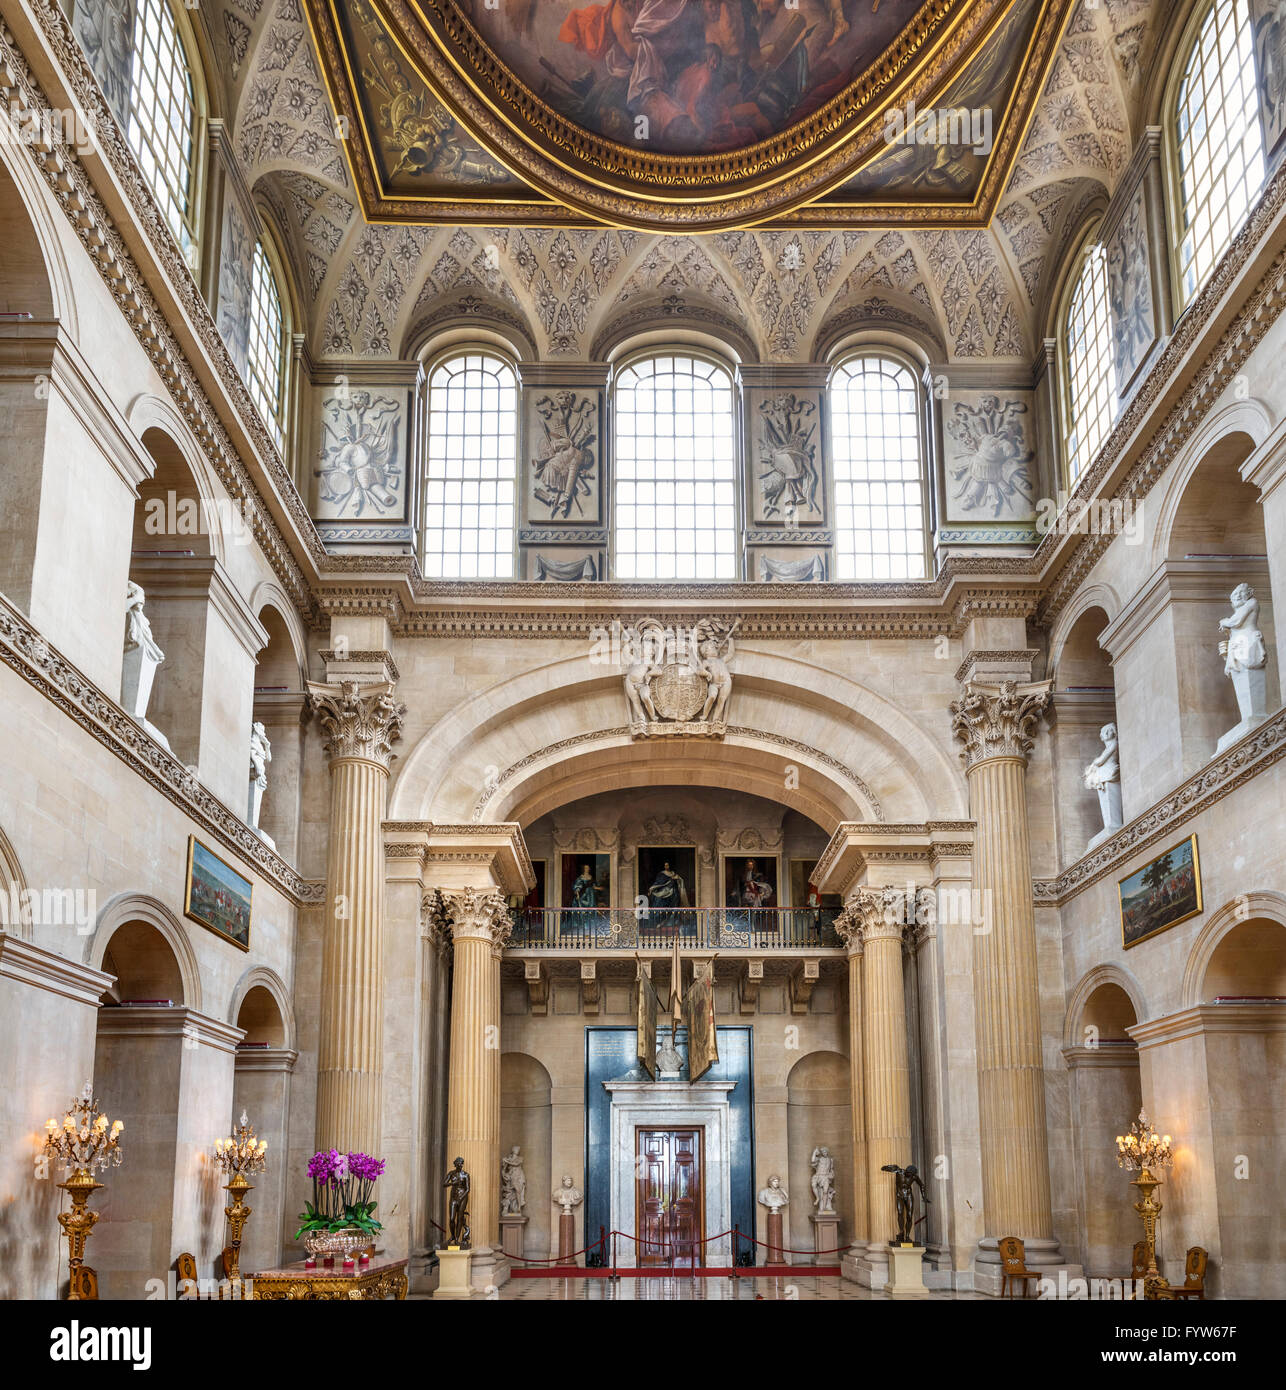 Entrance Hall in Blenheim Palace, seat of  Dukes of Marlborough and birthplace of Winston Churchill, Woodstock, - Stock Image